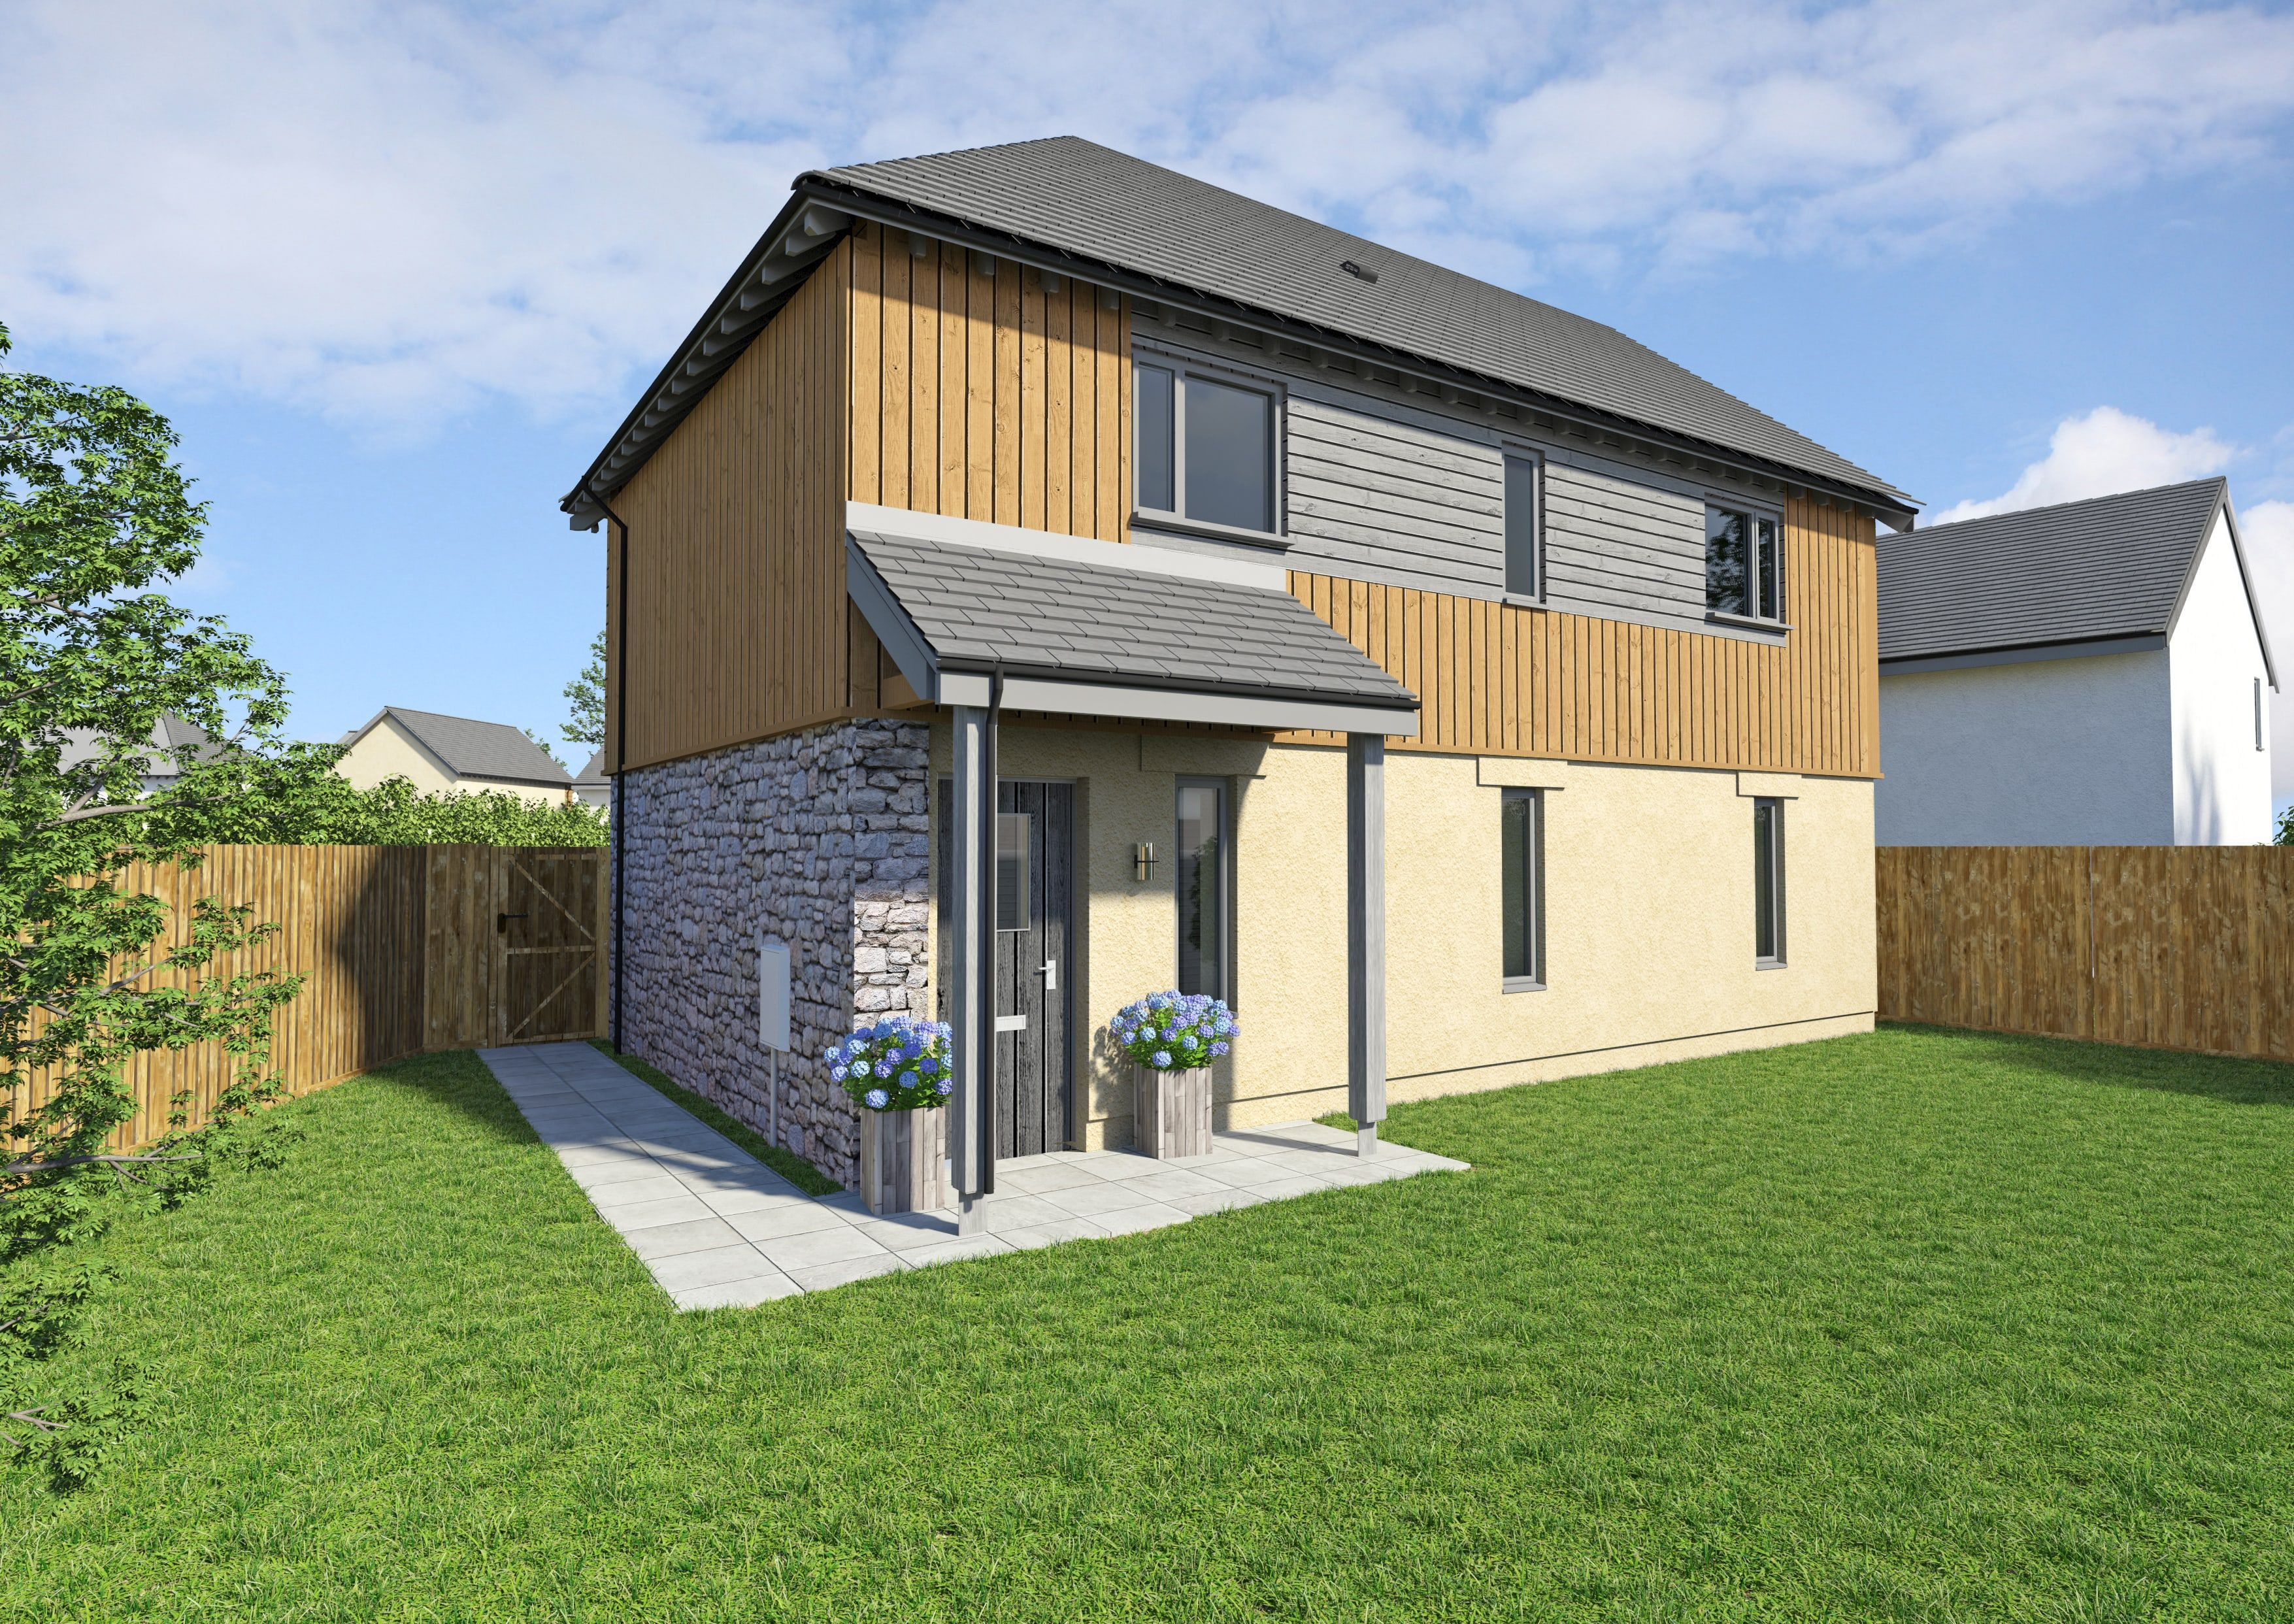 Hawthorn 2 bedroom coach house with open plan kitchen